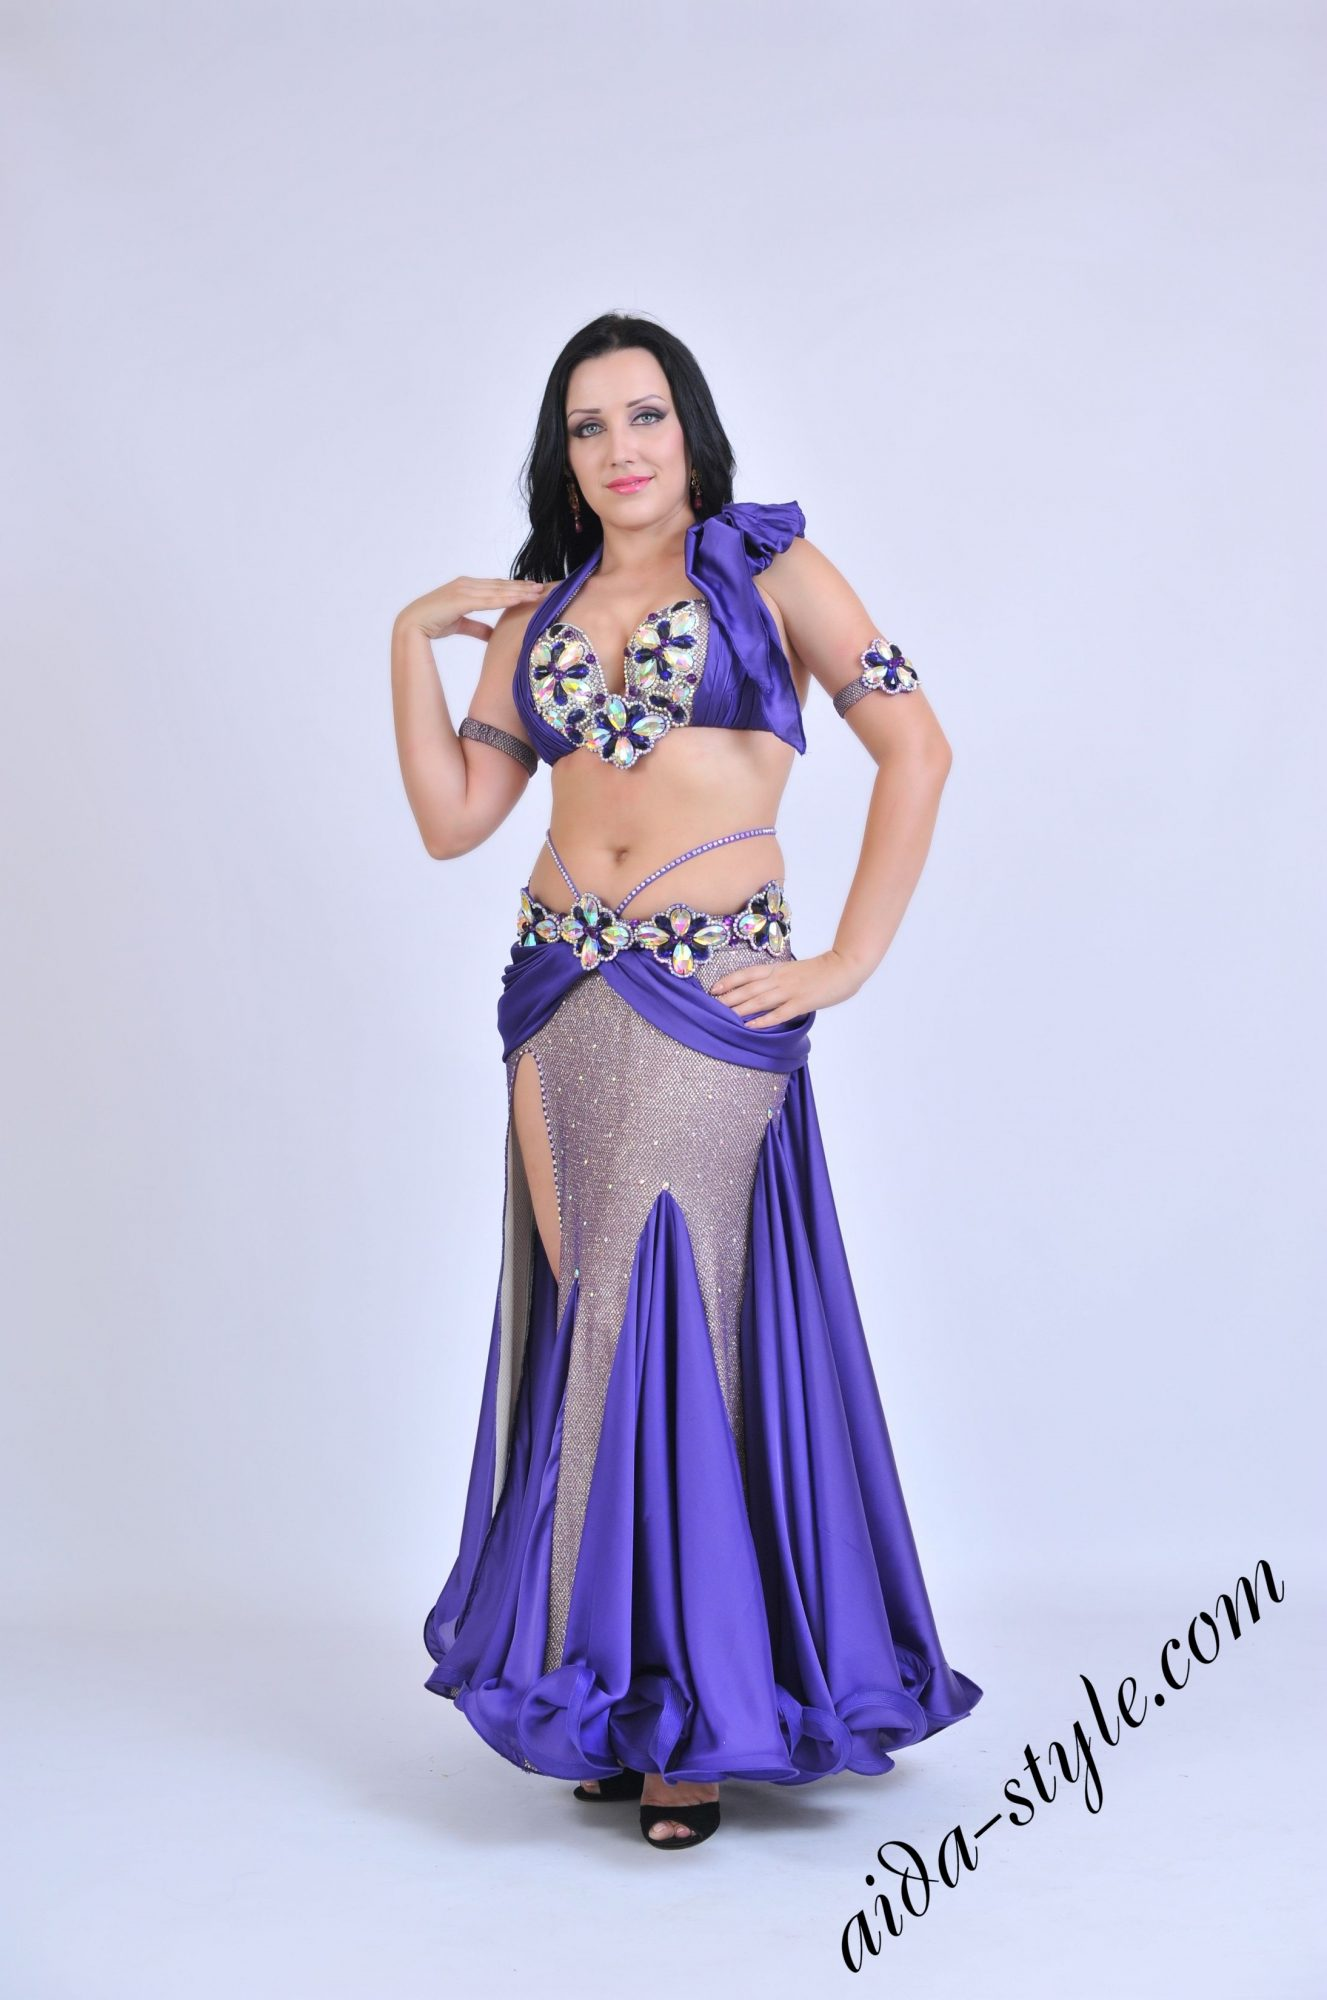 Purple belly dance outfit by Olga Aida with drapping that enhances hips dance